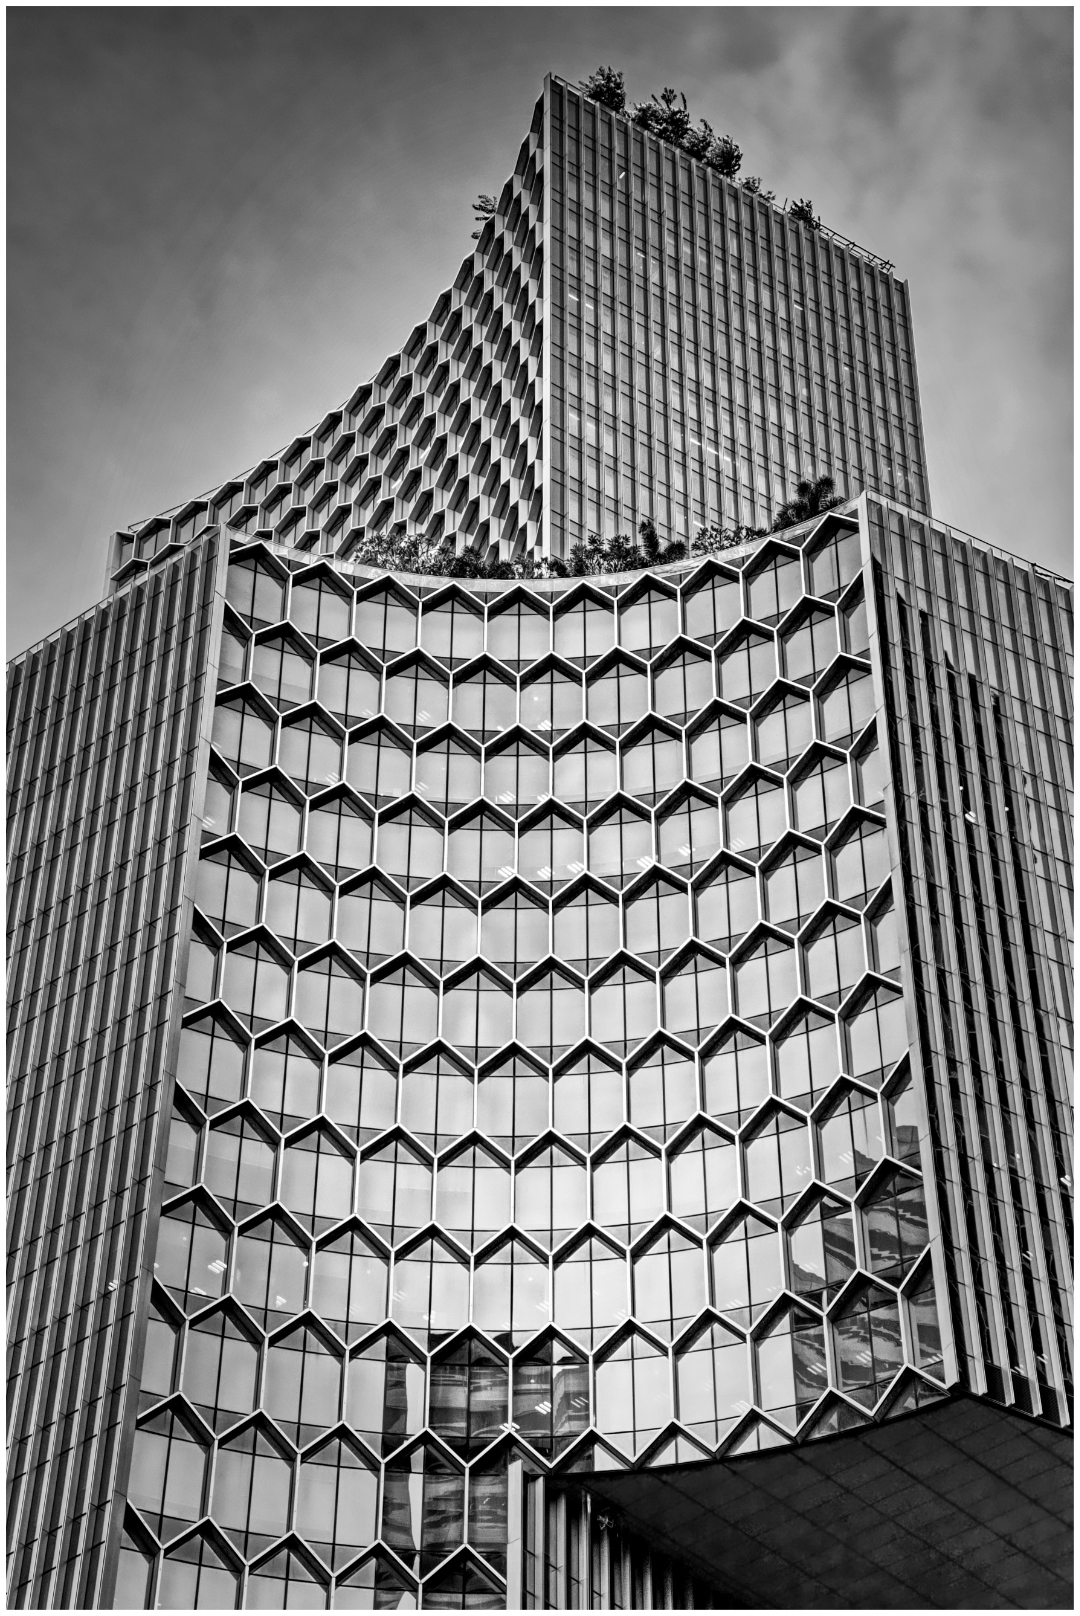 Architecture_Curved Shapes_P Moodie_Bgr_Honour